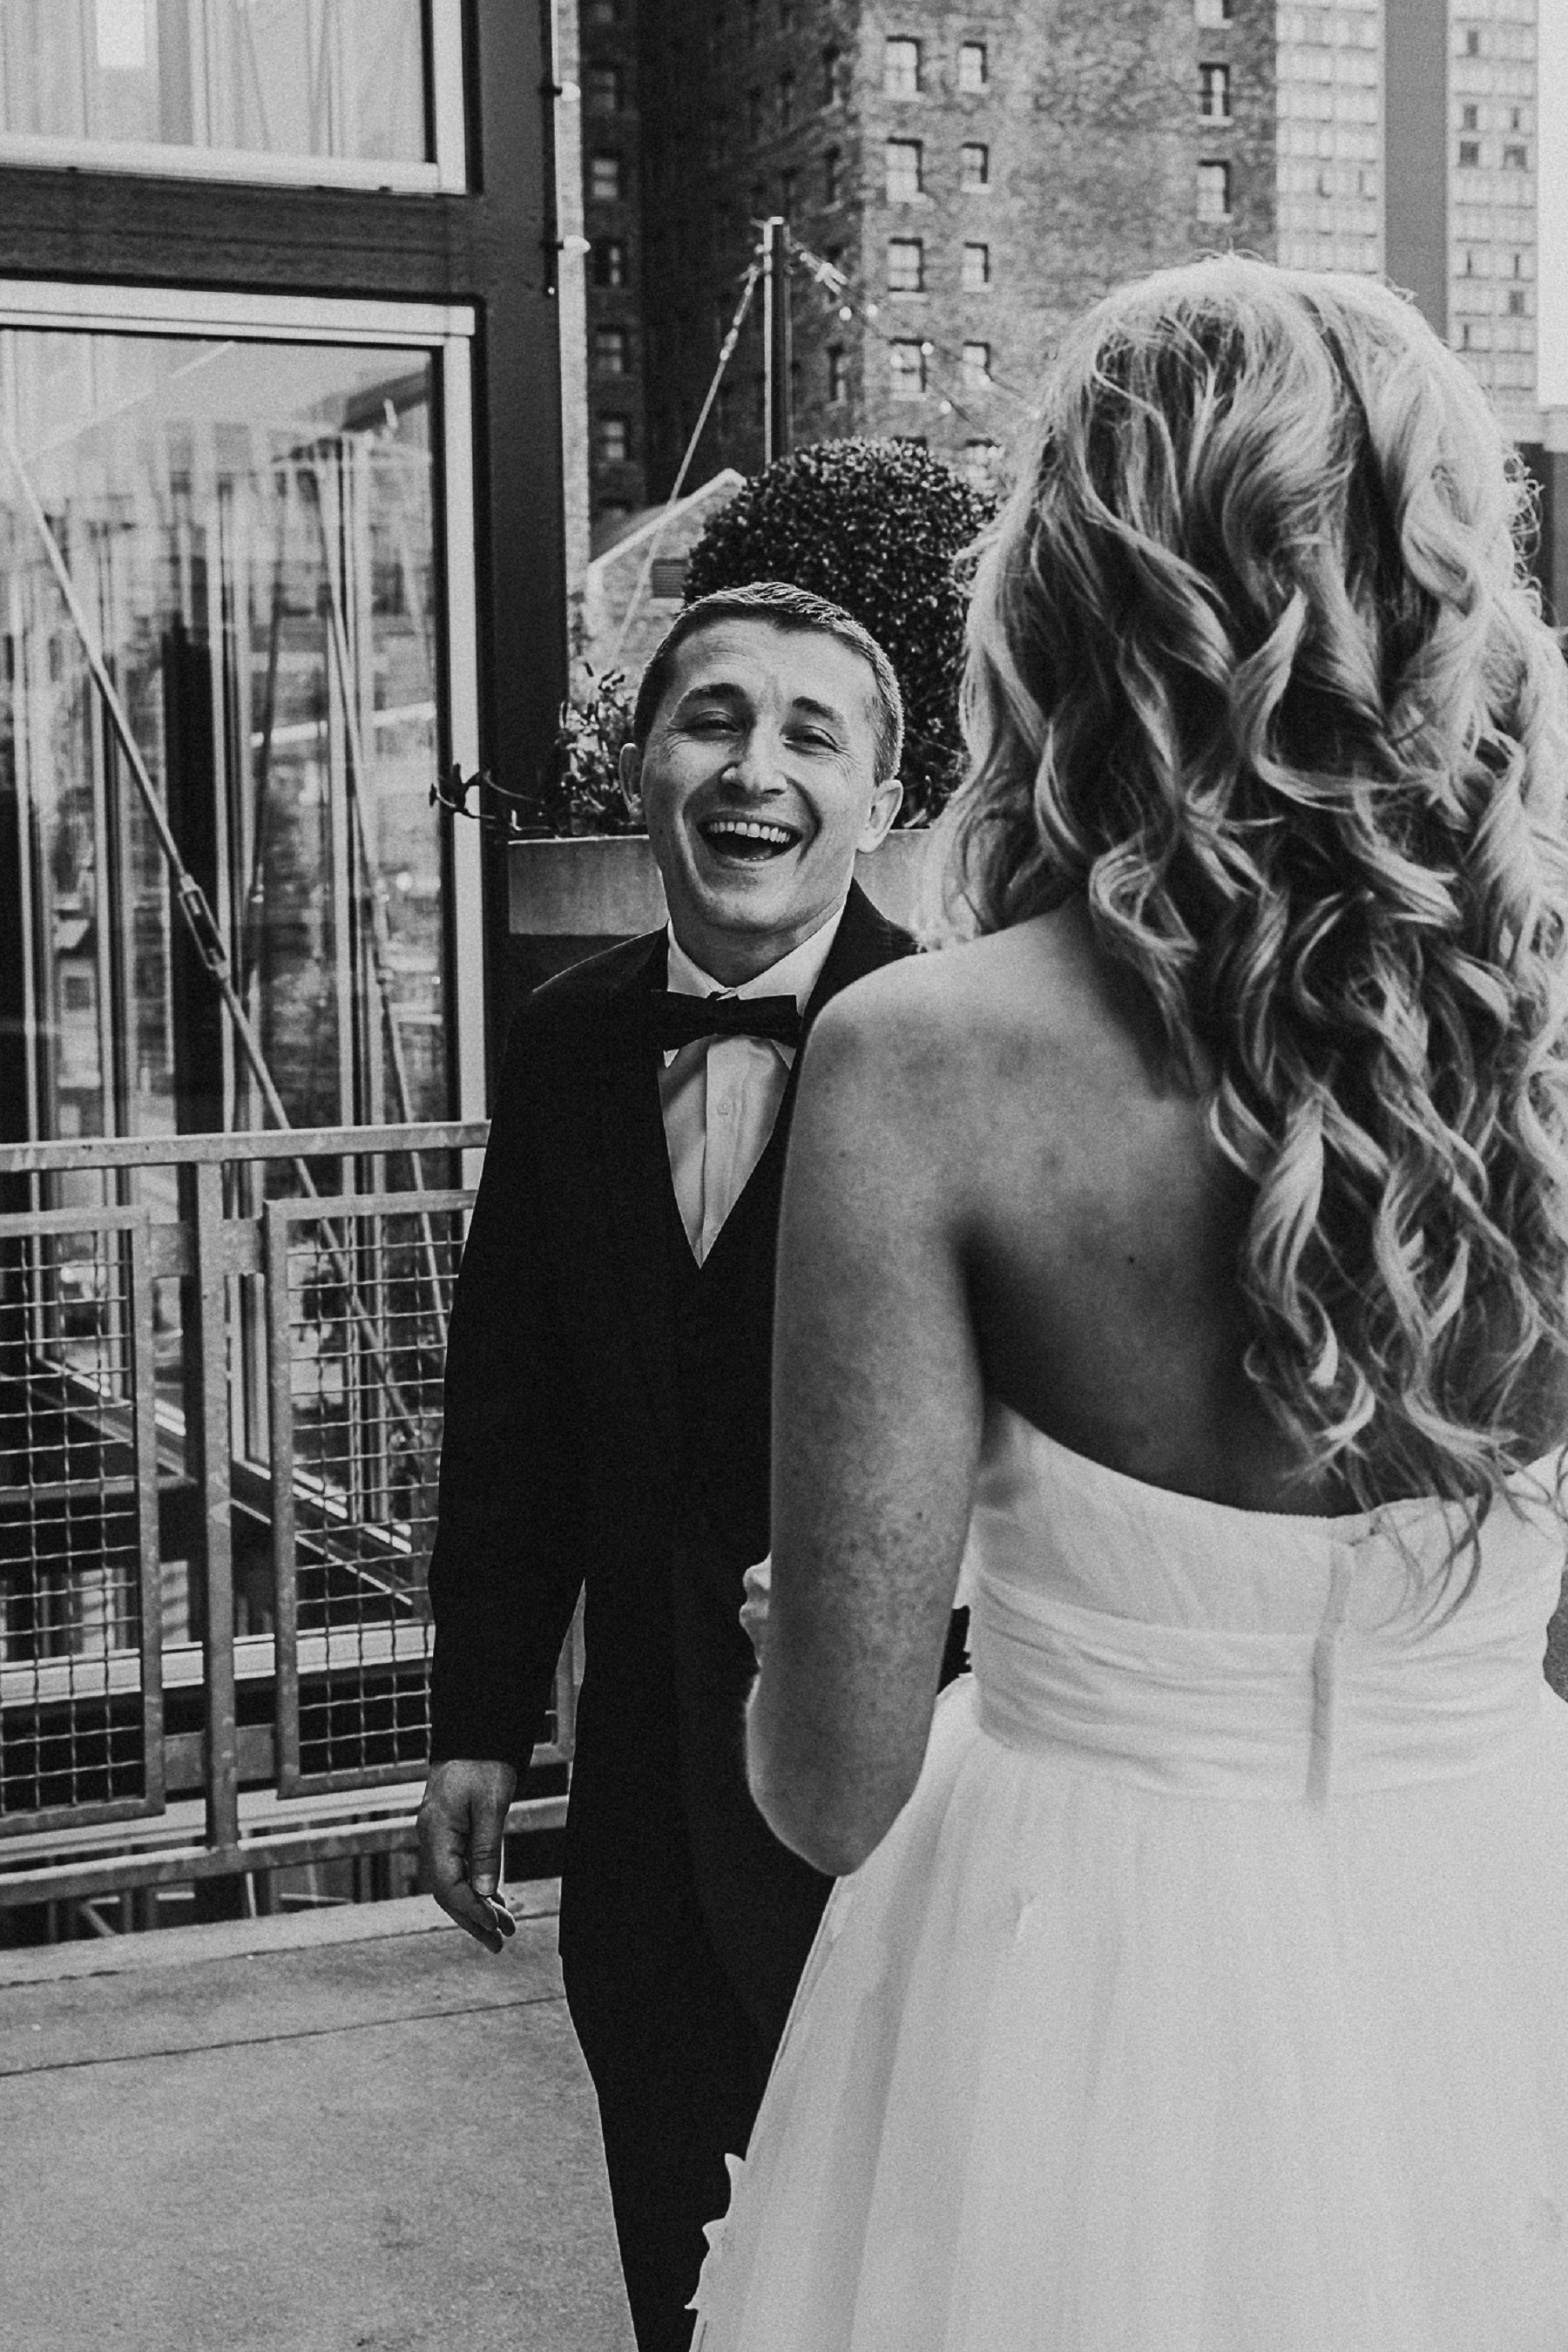 The First Look by Merry Ohler | Wedding Photographer in Kansas City